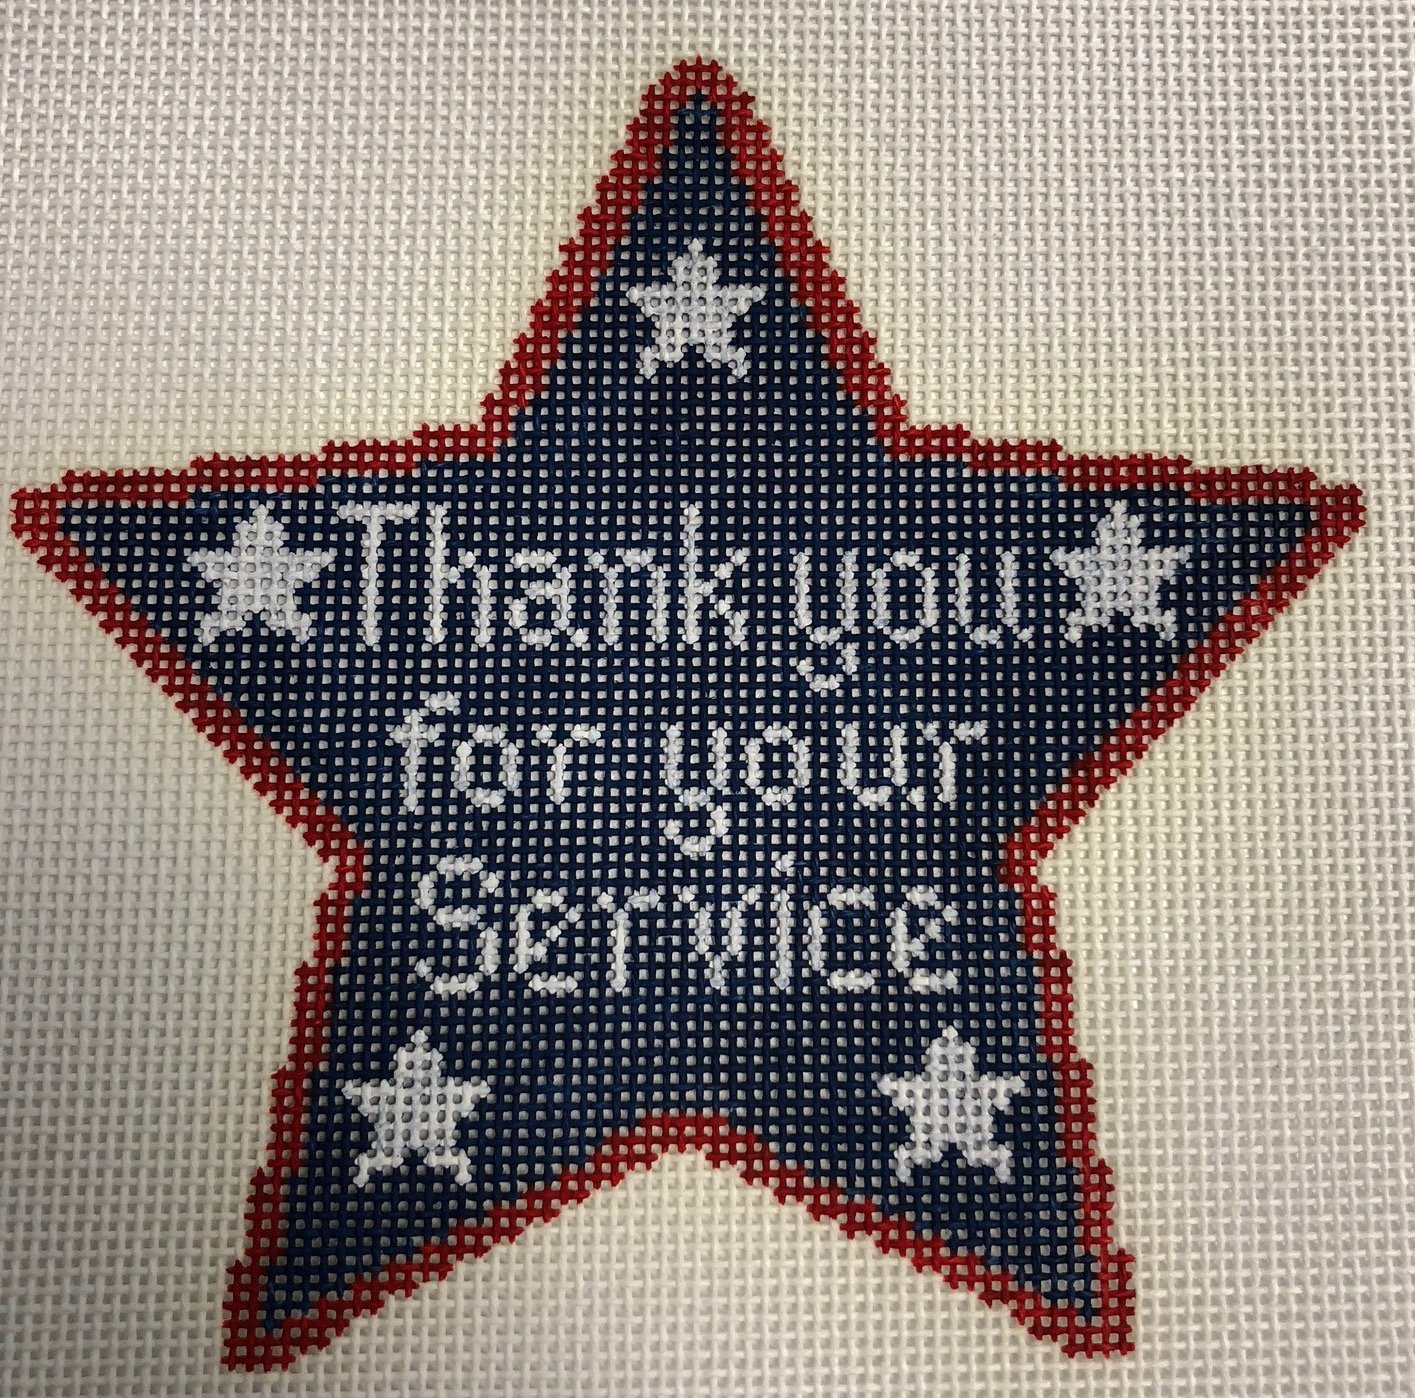 thank you for your service, star